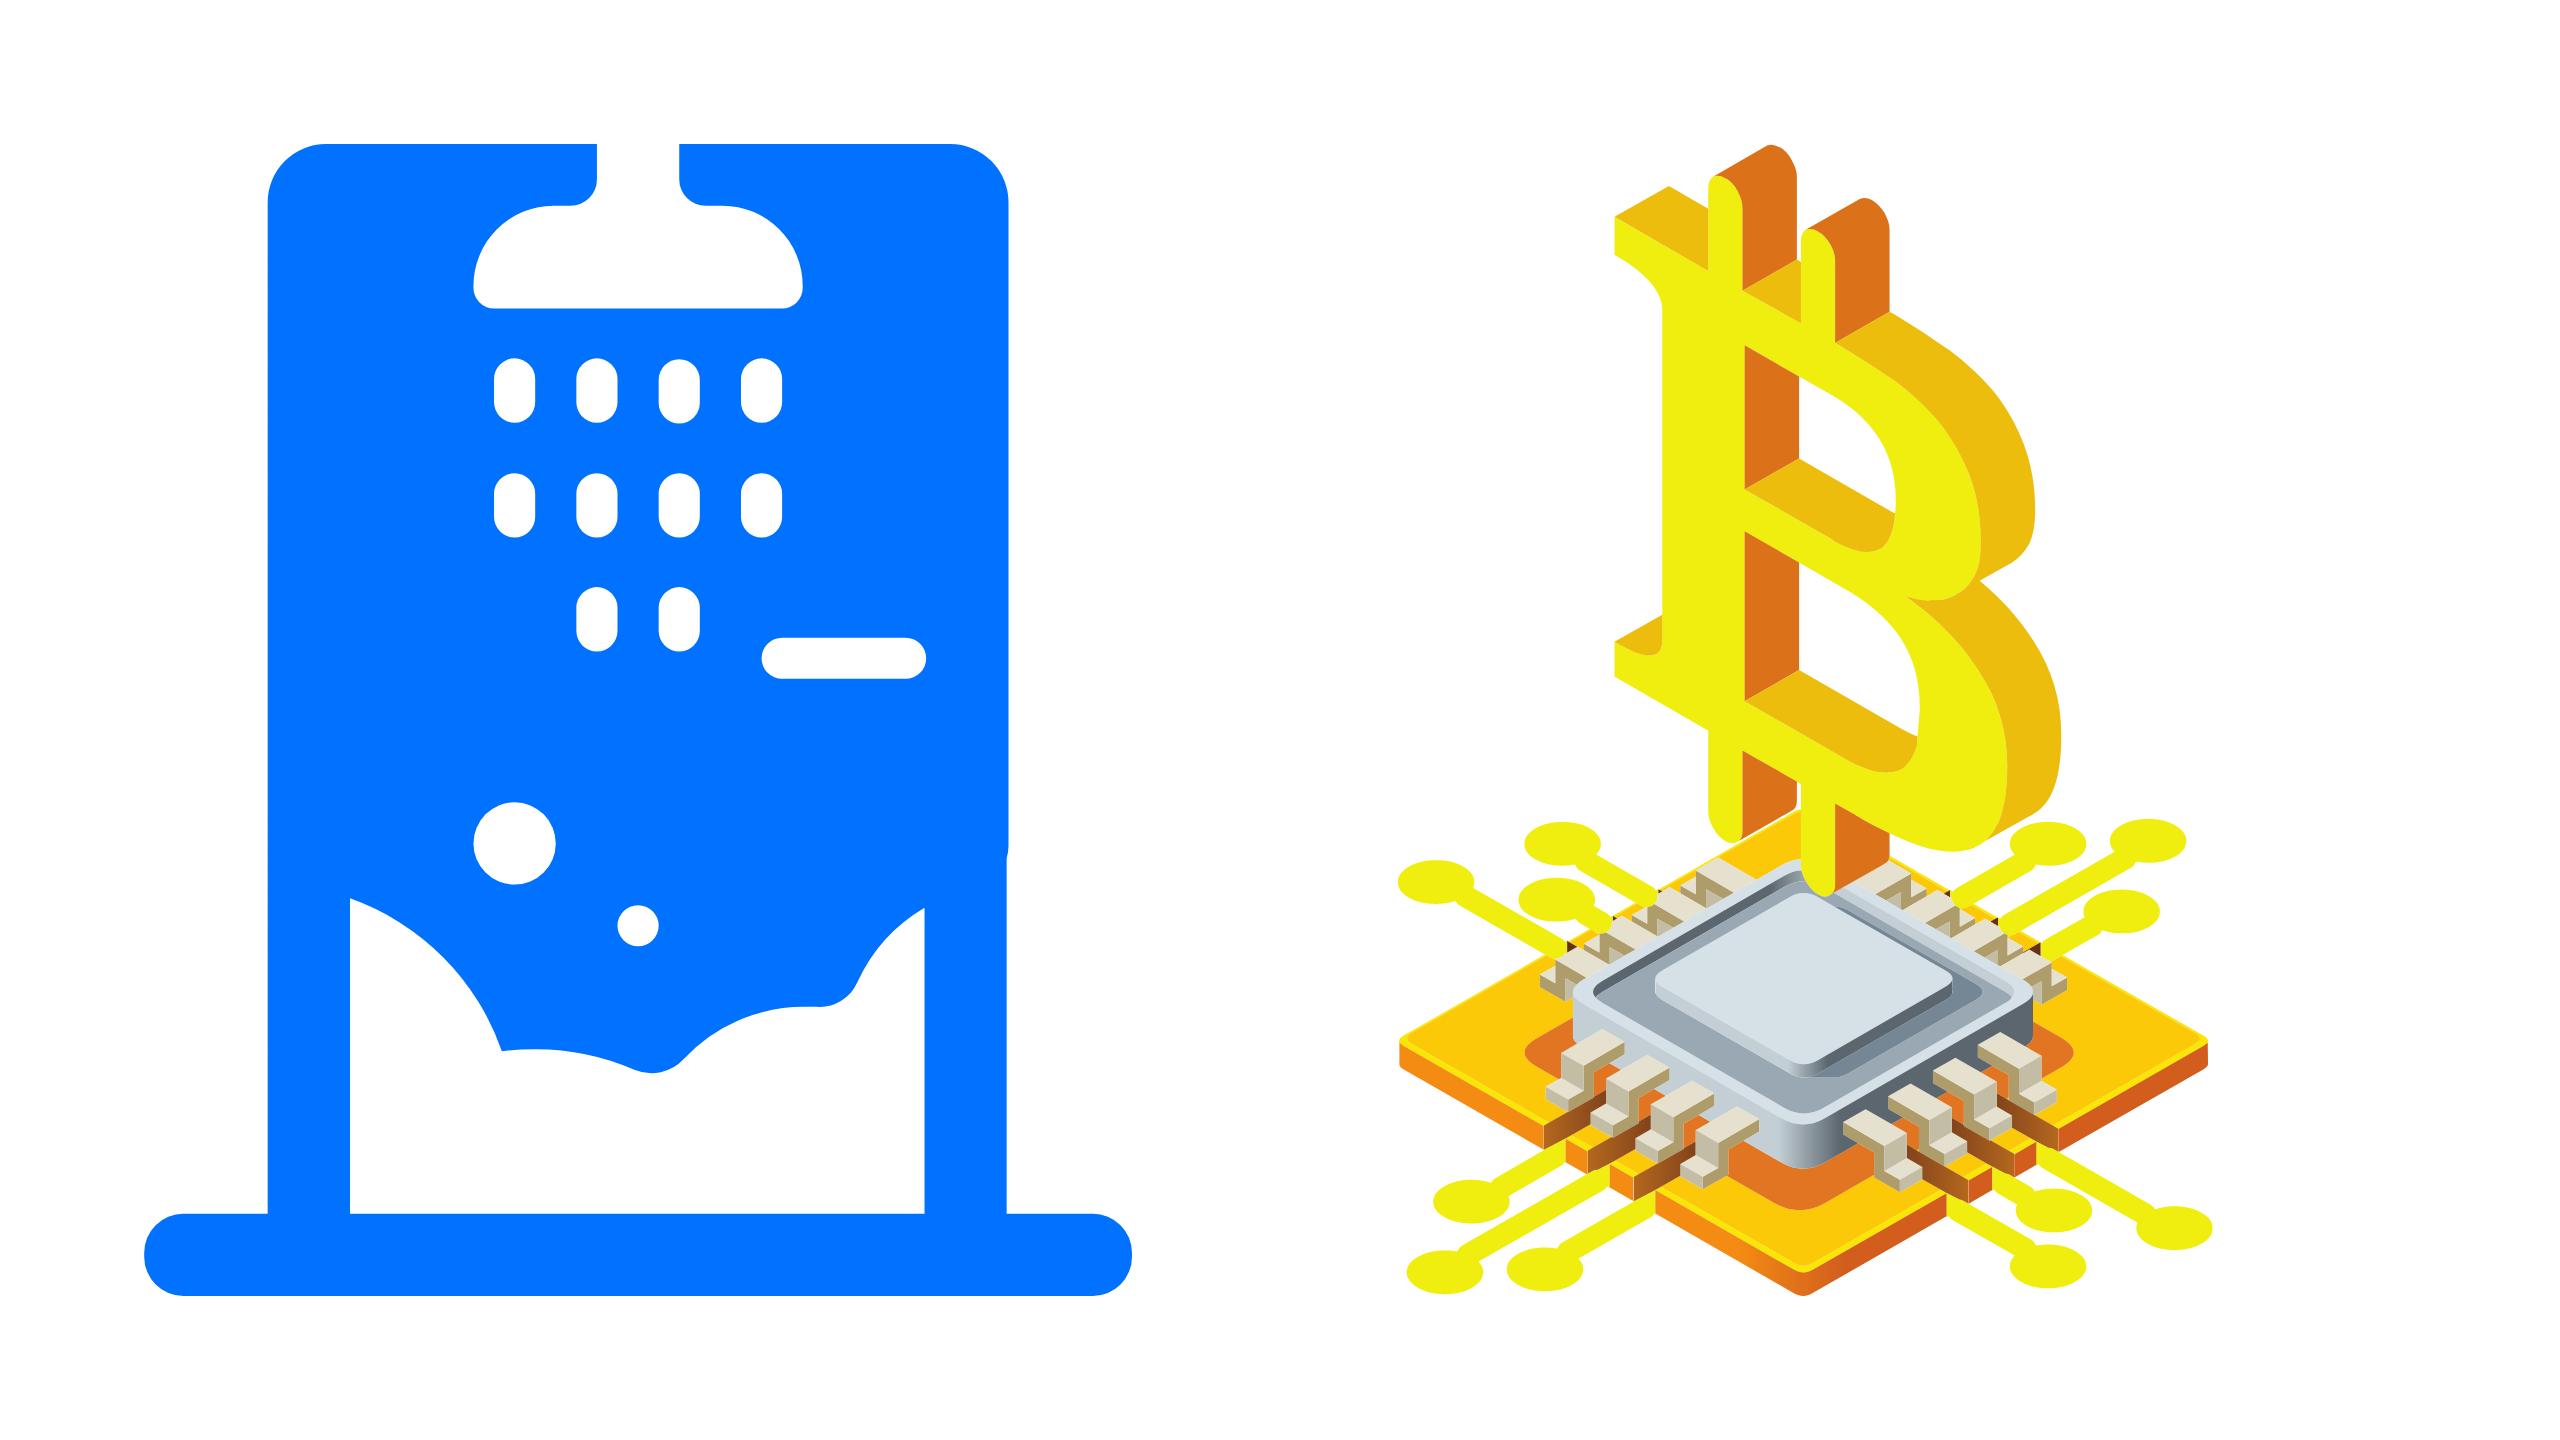 Cryptotab Free Bitcoin Web surfing Browser BAT Basic Attention Token Rewards Bonus website Betchain Online BTC Casino Kingbit Casino online gambling. Primedice Bitcoin Gambling the original crypto dice game Bitstarz Online Bitcoin Casino Cloudbet sports book and casino xcoins.io cex.io exchange coinmama exchange Binance Bitcoin Exchange EXMO.com Cryptocurrency exchange Poloniex Cryptocurrency Exchange CEX.IO CEX.IO Worldwide Bitcoin Exchange Trezor Ledger Model T Tokens Net Platform Binance Crypto Currency Exchange Local Bitcoins service trading Buybit BTC Exchange Trezor One Metallic Bitcoin Litecoin Dash XRP and Binance Coin. Bytcion Search Engine find all your favorite crypto in one place.